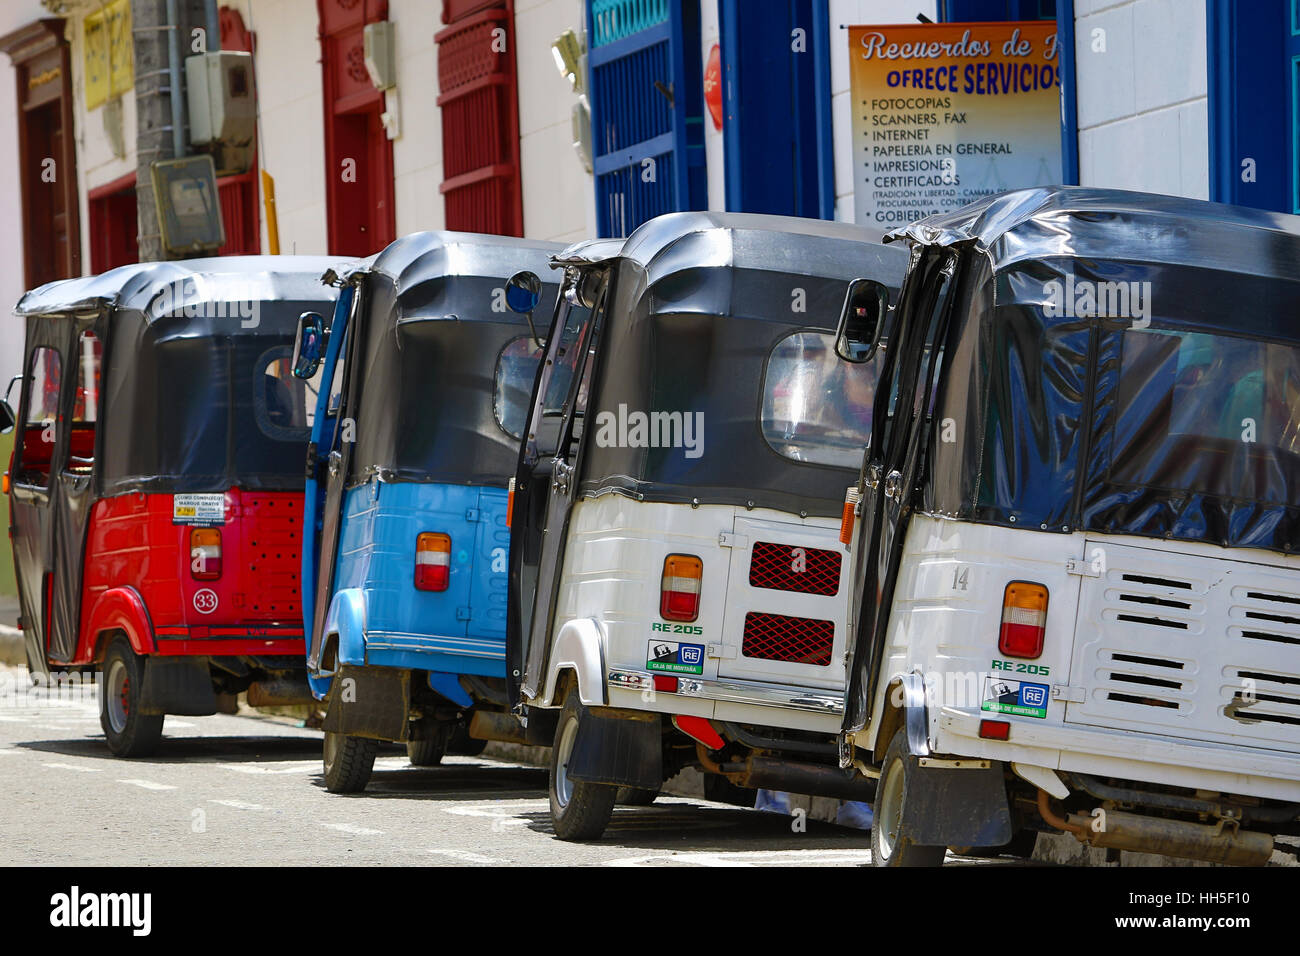 September 30, 2016 El Jardin, Colombia: small three wheeled motorized taxis called moto-raton waiting for customers - Stock Image